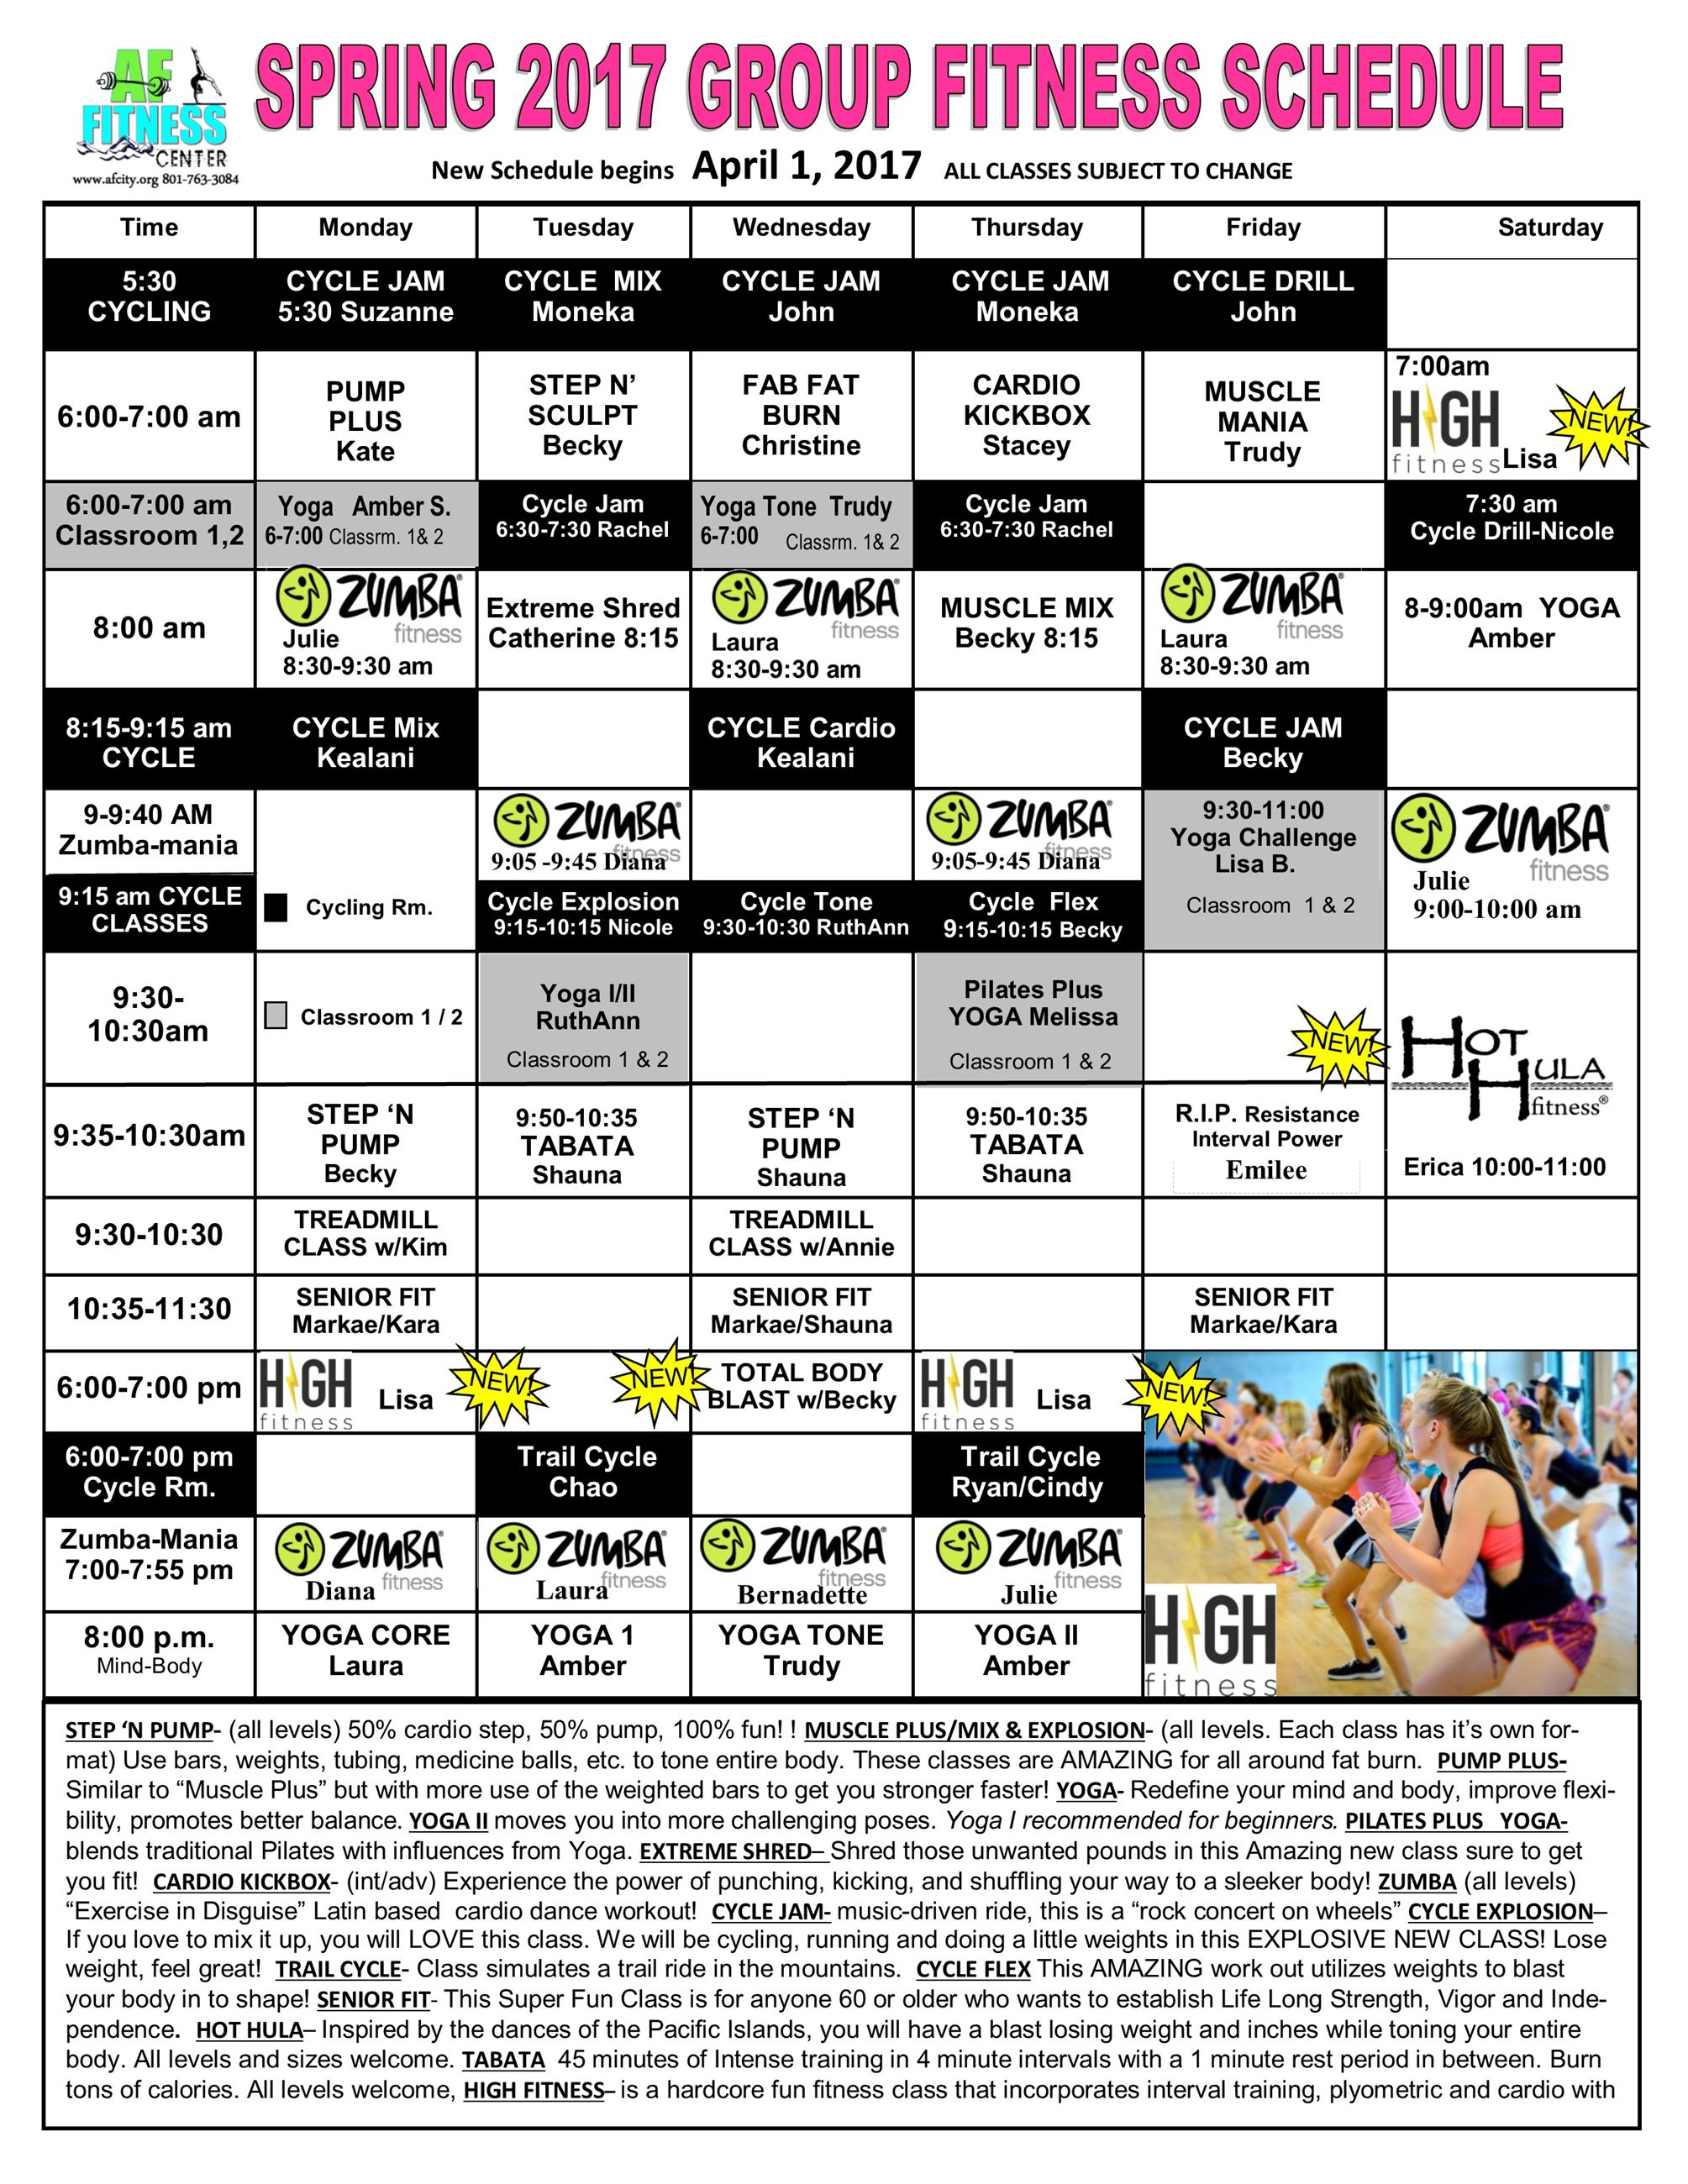 Group Fitness Land April 2017